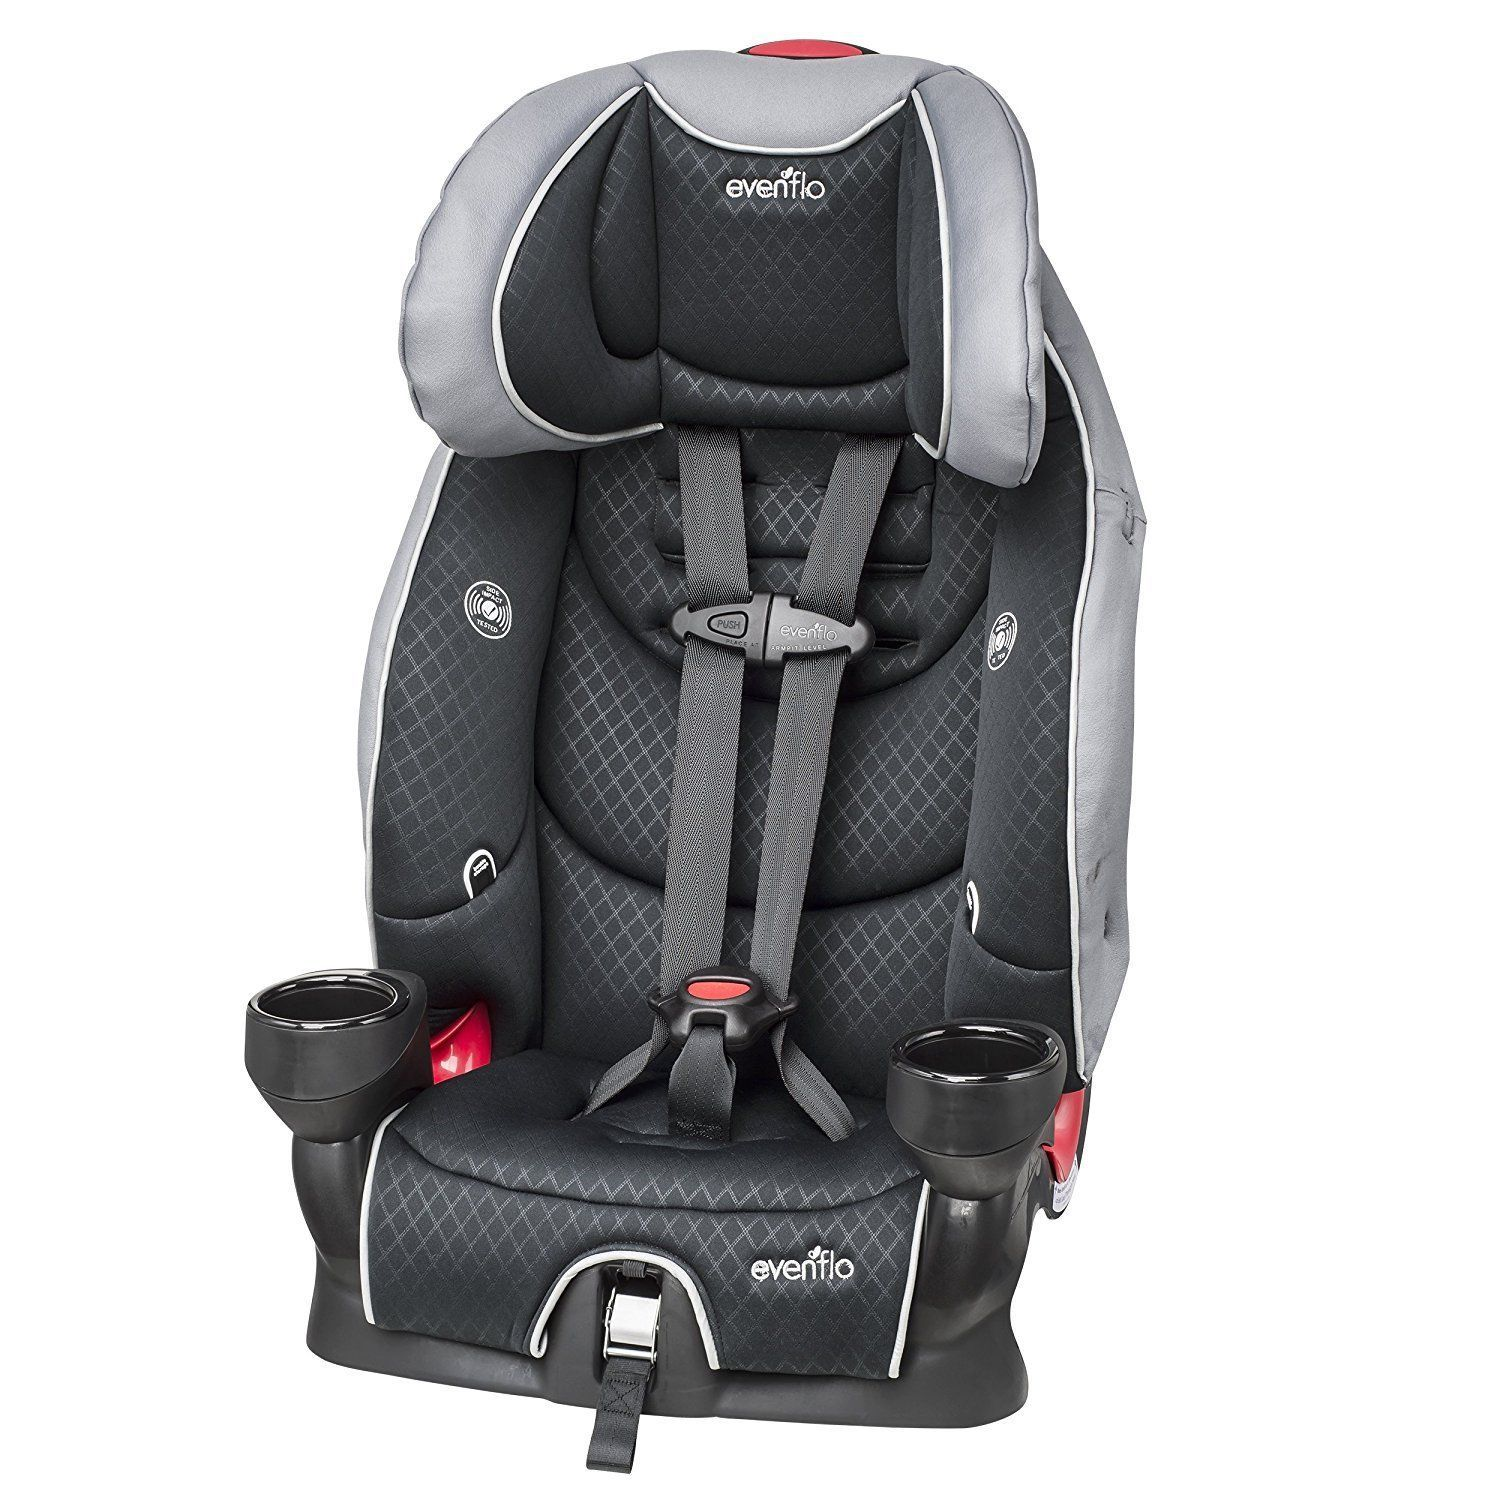 Best Car Seat For Toddler Kids Child Safety 2 In 1